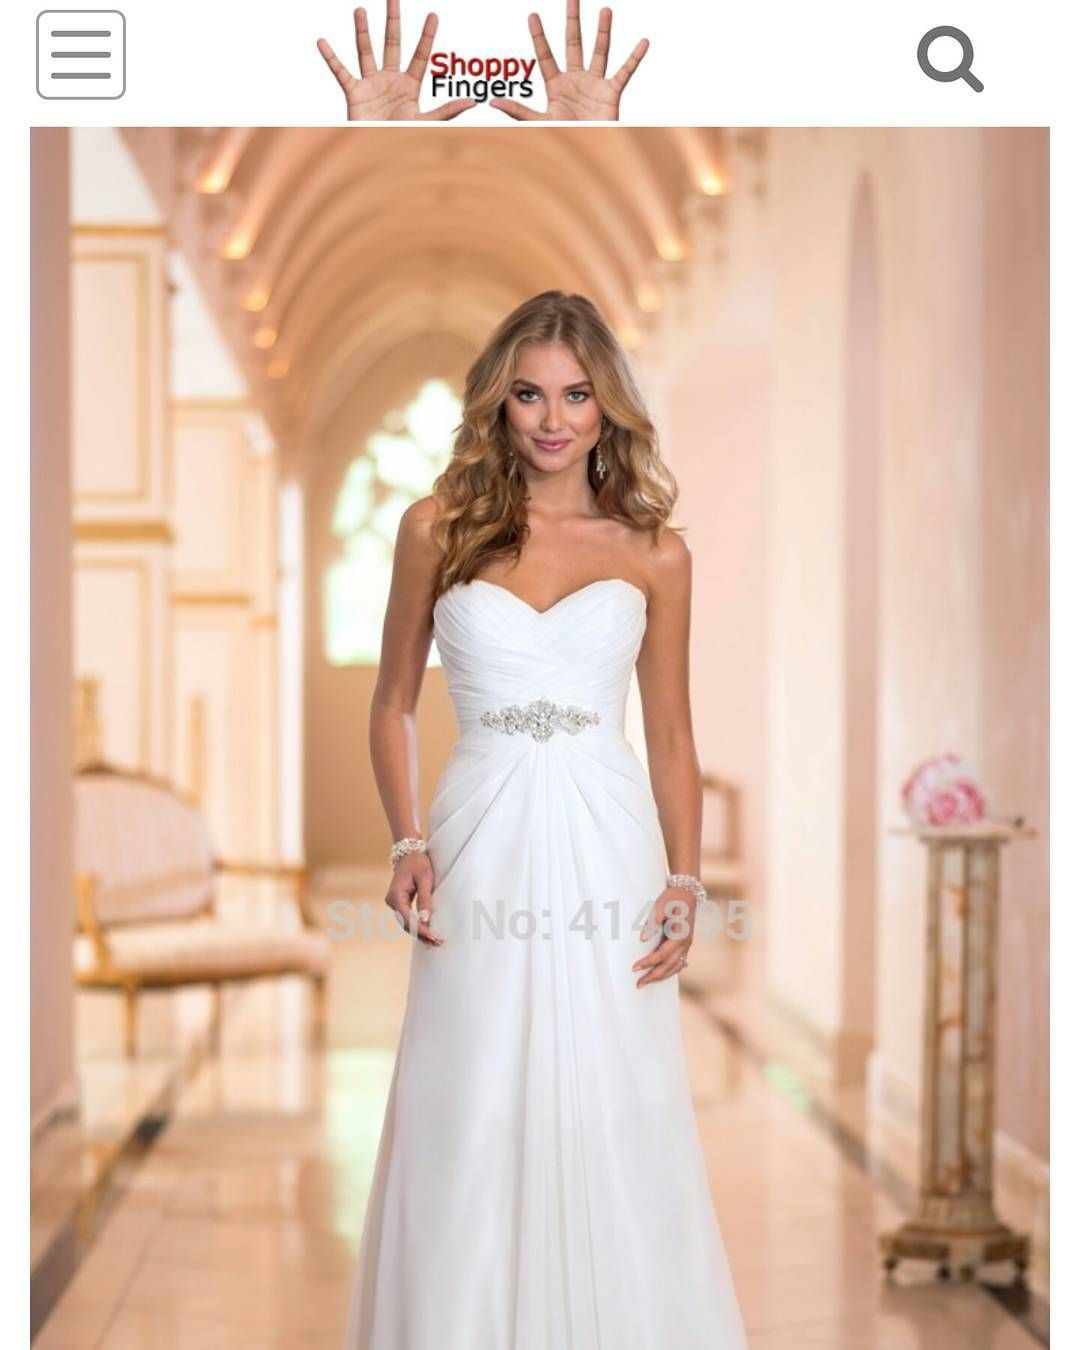 Girls wedding dress  Waiting for that day more at shoppyfingers shoppyfingers girls